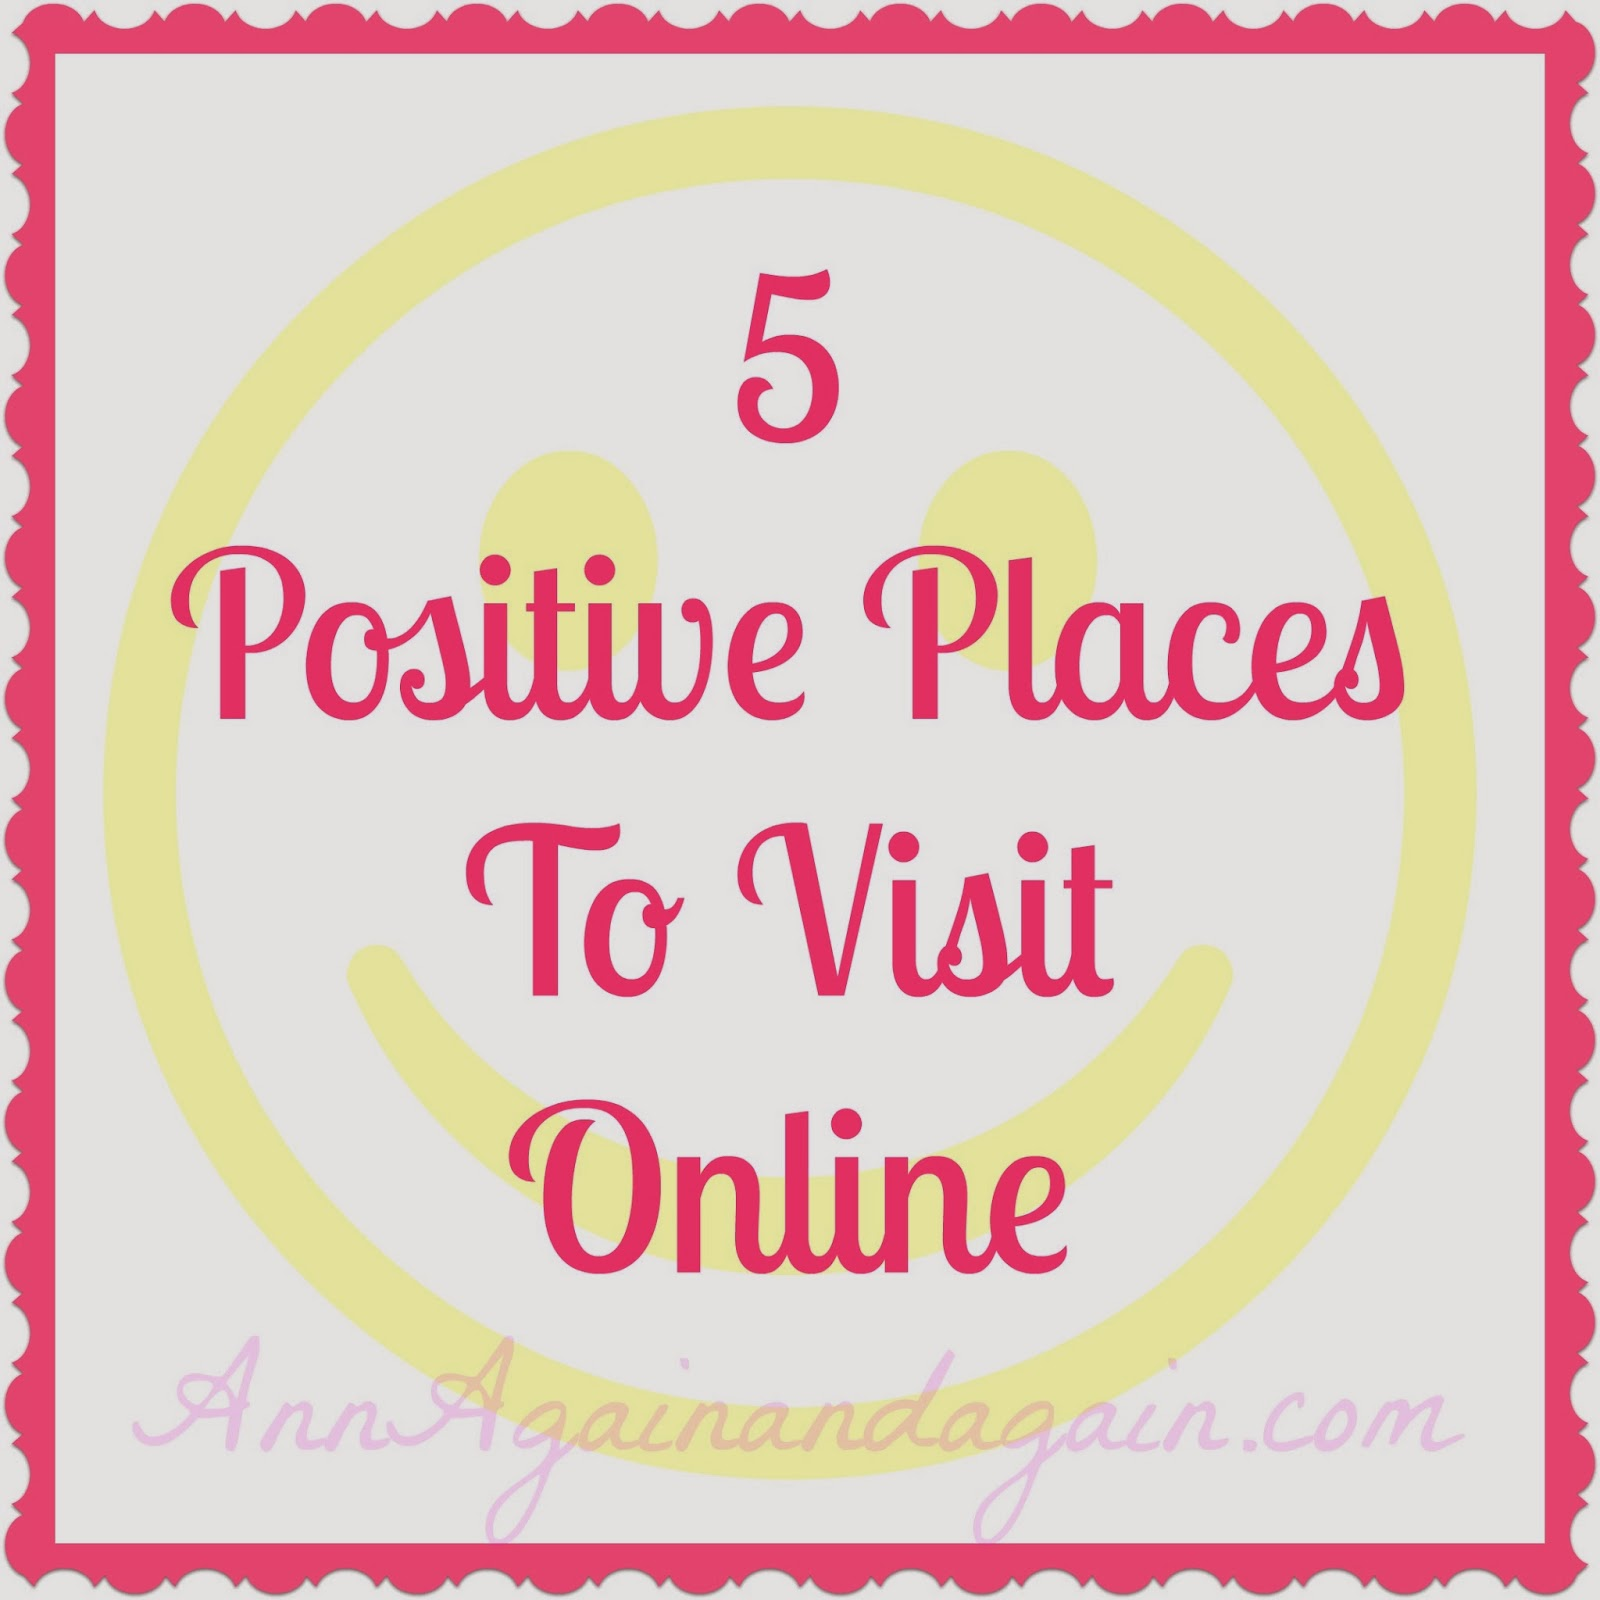 5 Positive Places To Visit Online - Ann Again and again